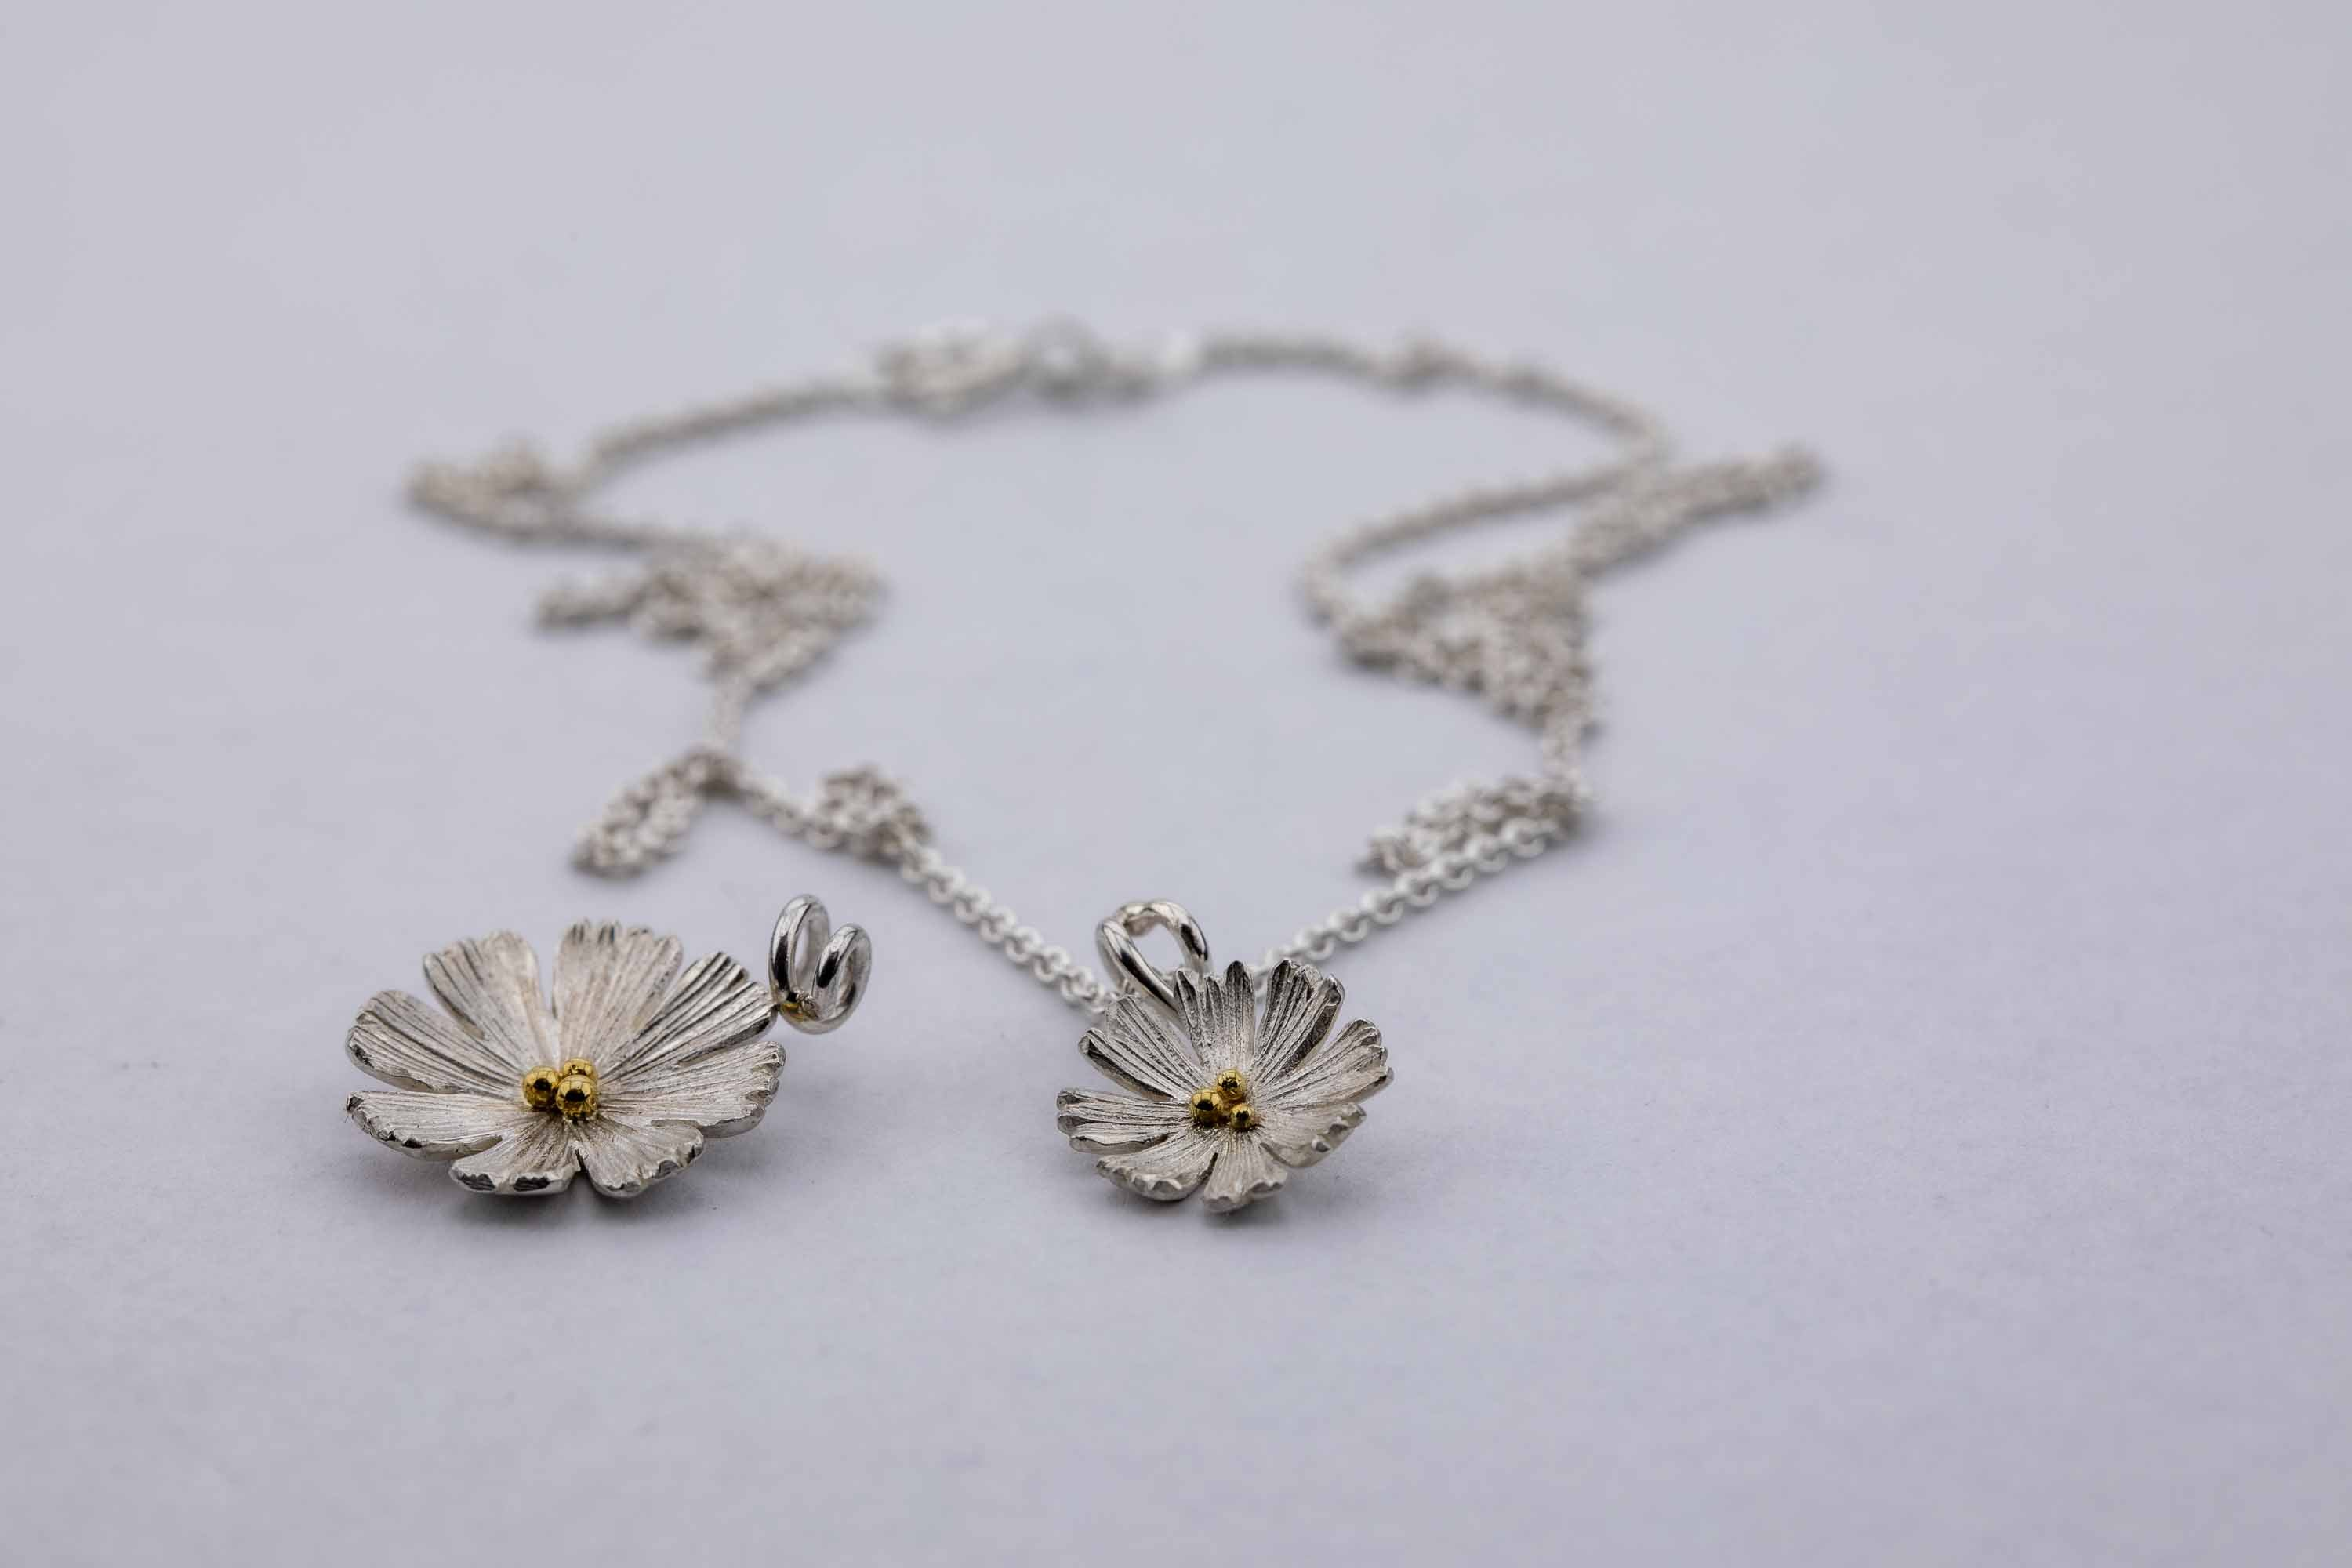 Collier Blüte, Silber & Gold